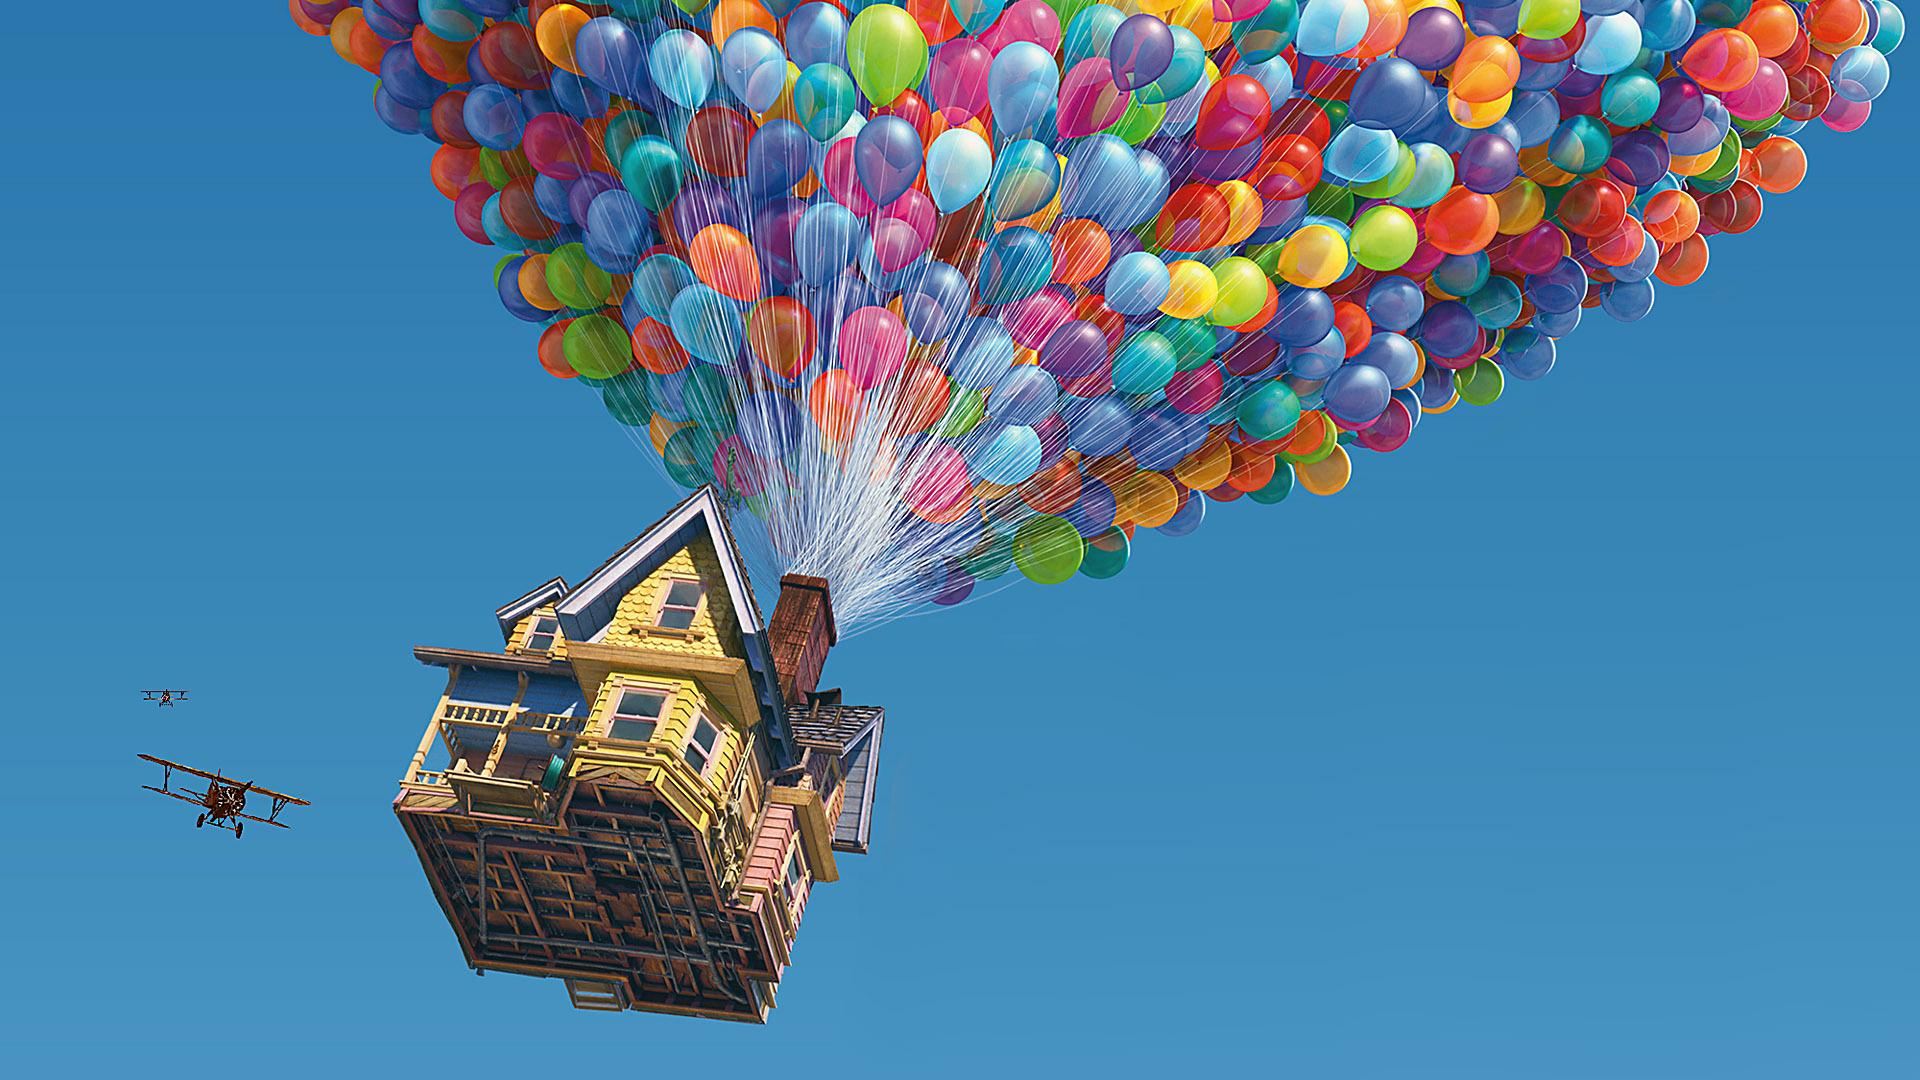 Up movie Wallpaper 1920x1080 Up Movie Balloons 1920x1080